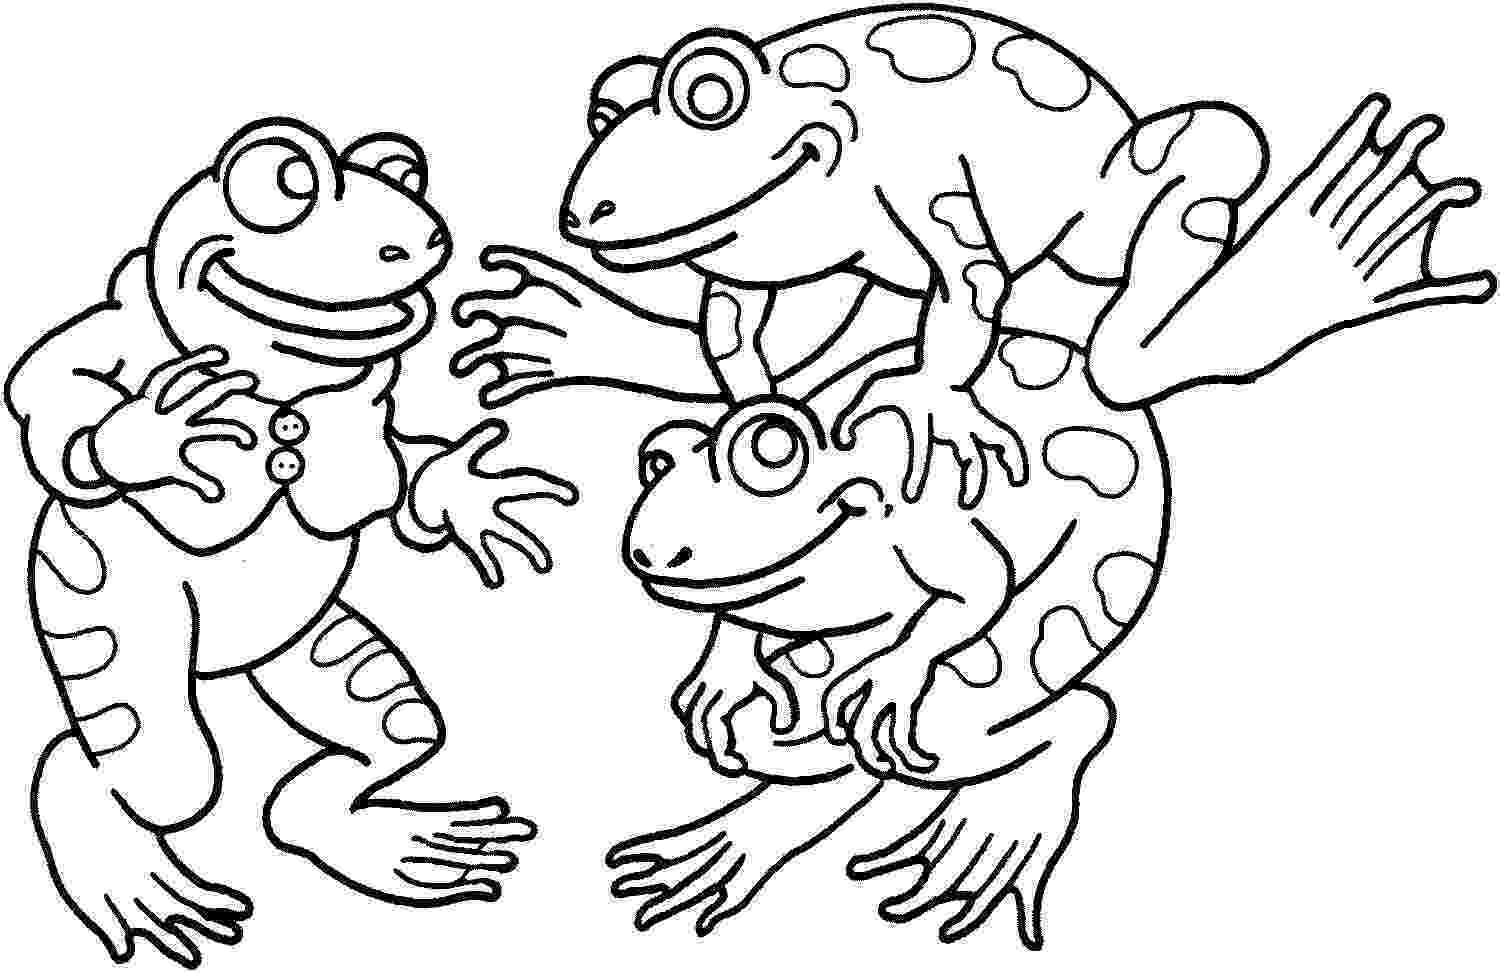 frog images to color free printable frog coloring pages for kids cool2bkids frog to images color